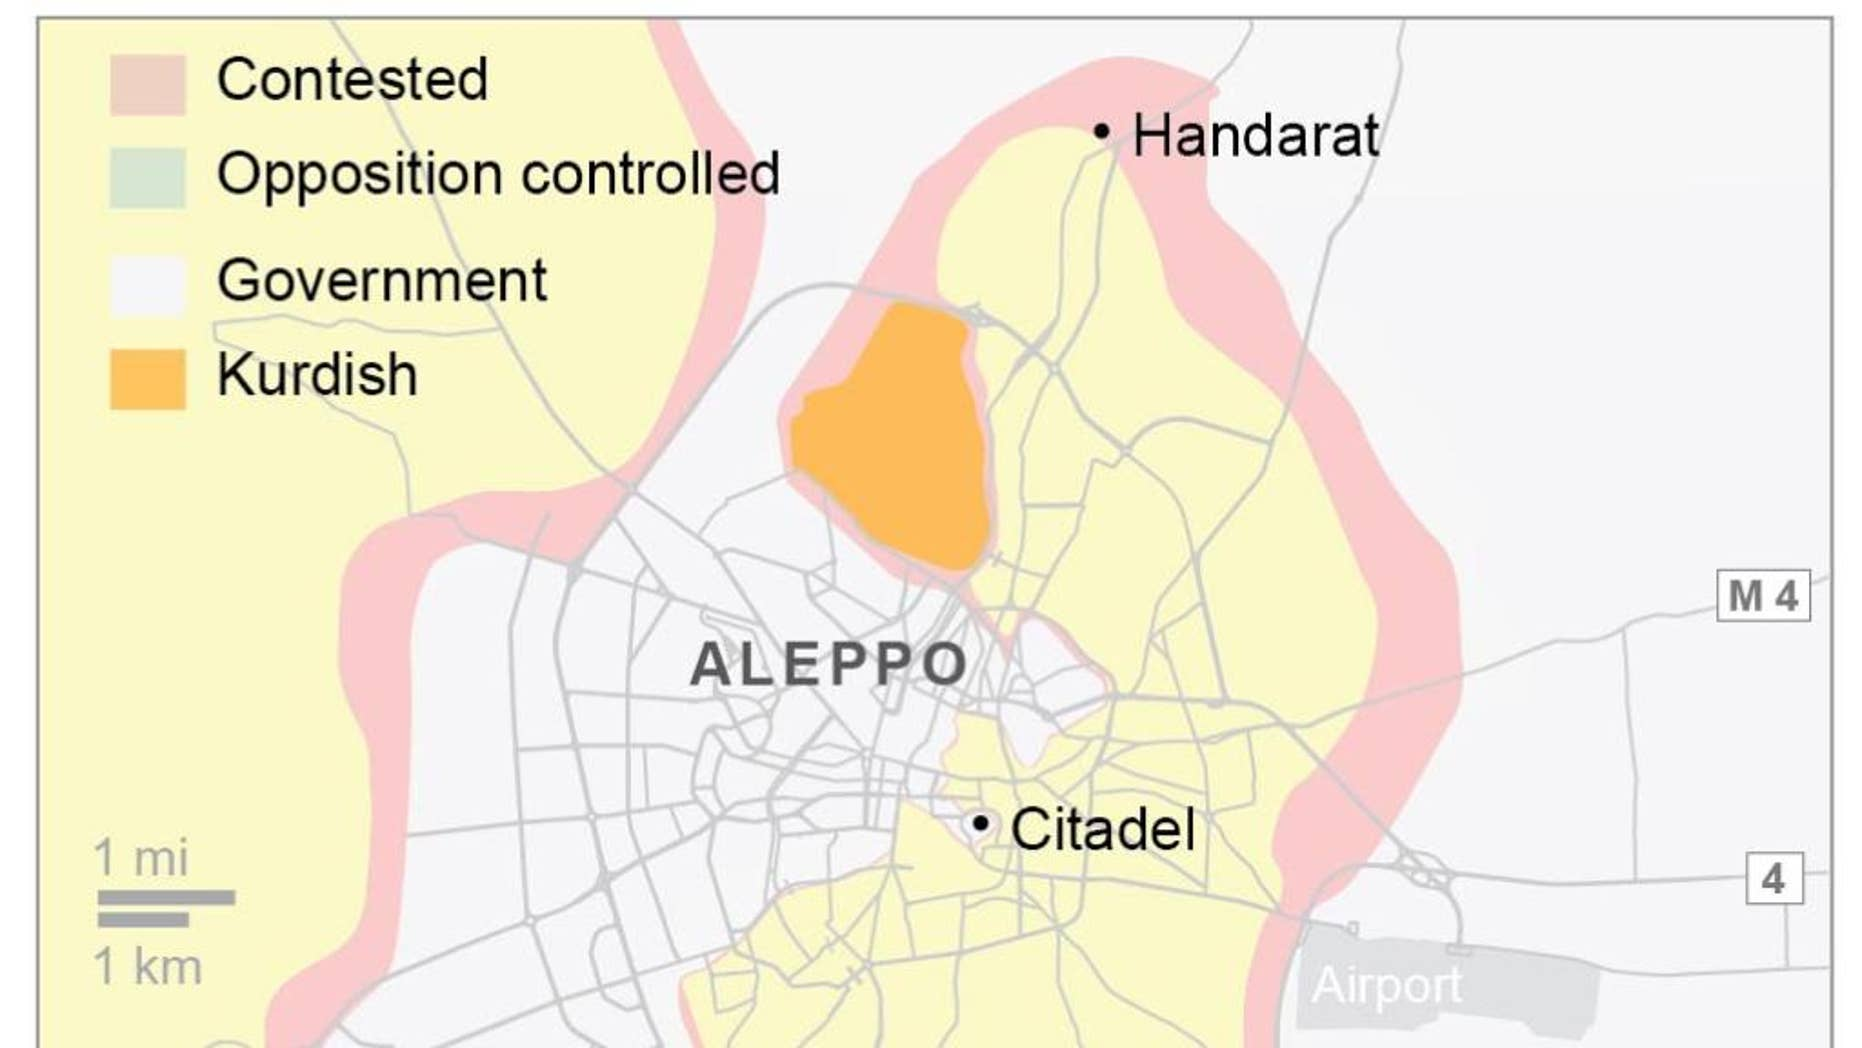 All access routes to east Aleppo are closed.